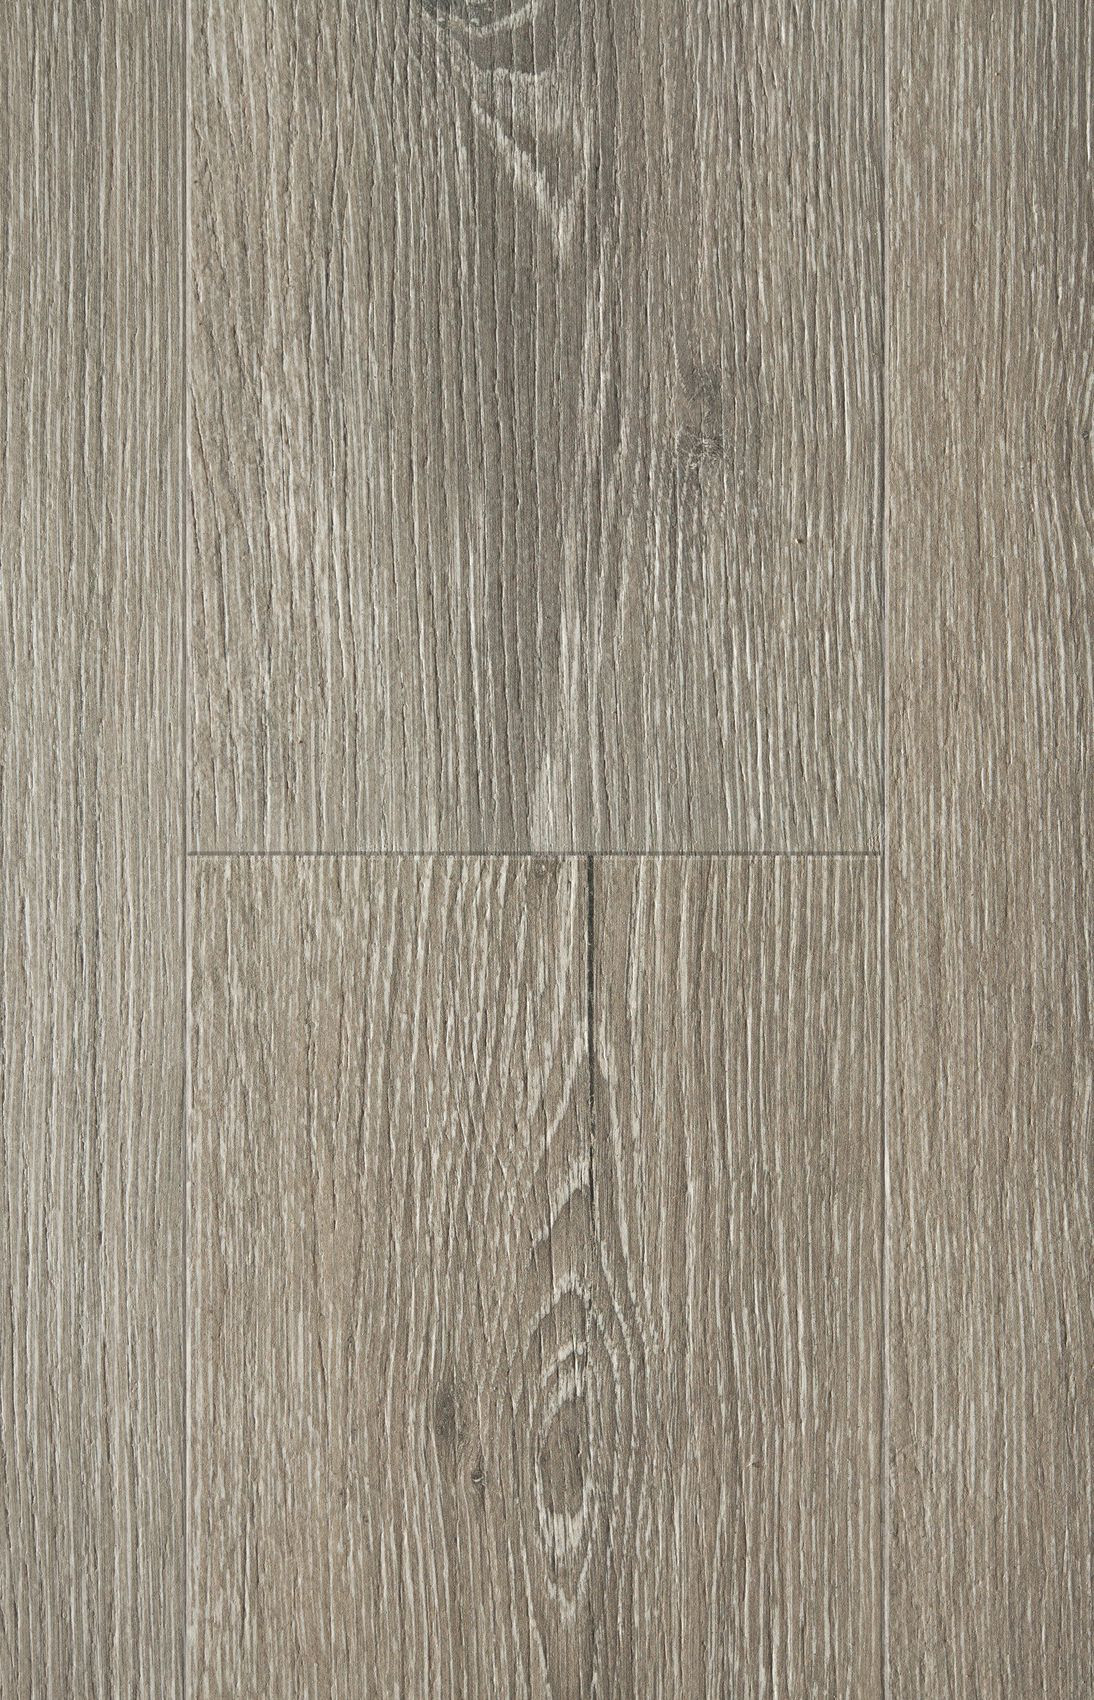 Korkkilankkulattia Wicanders Wood Essence Washed Castle Oak, 11,5x185x1830mm